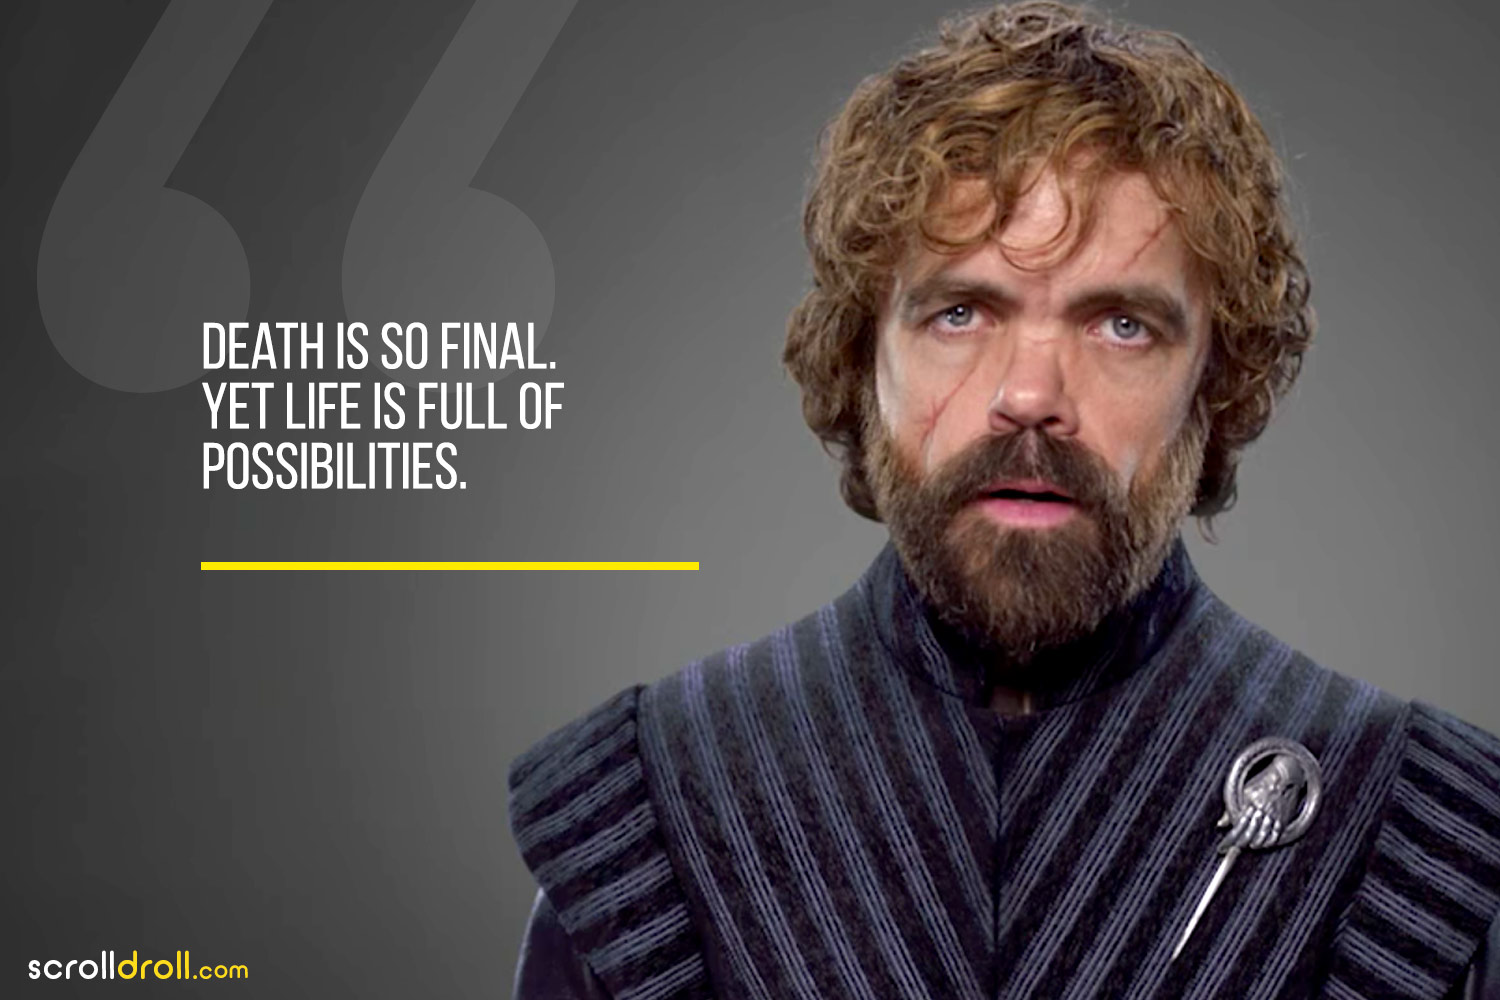 Tyrion-Death is so final. yet life is full of possibilities